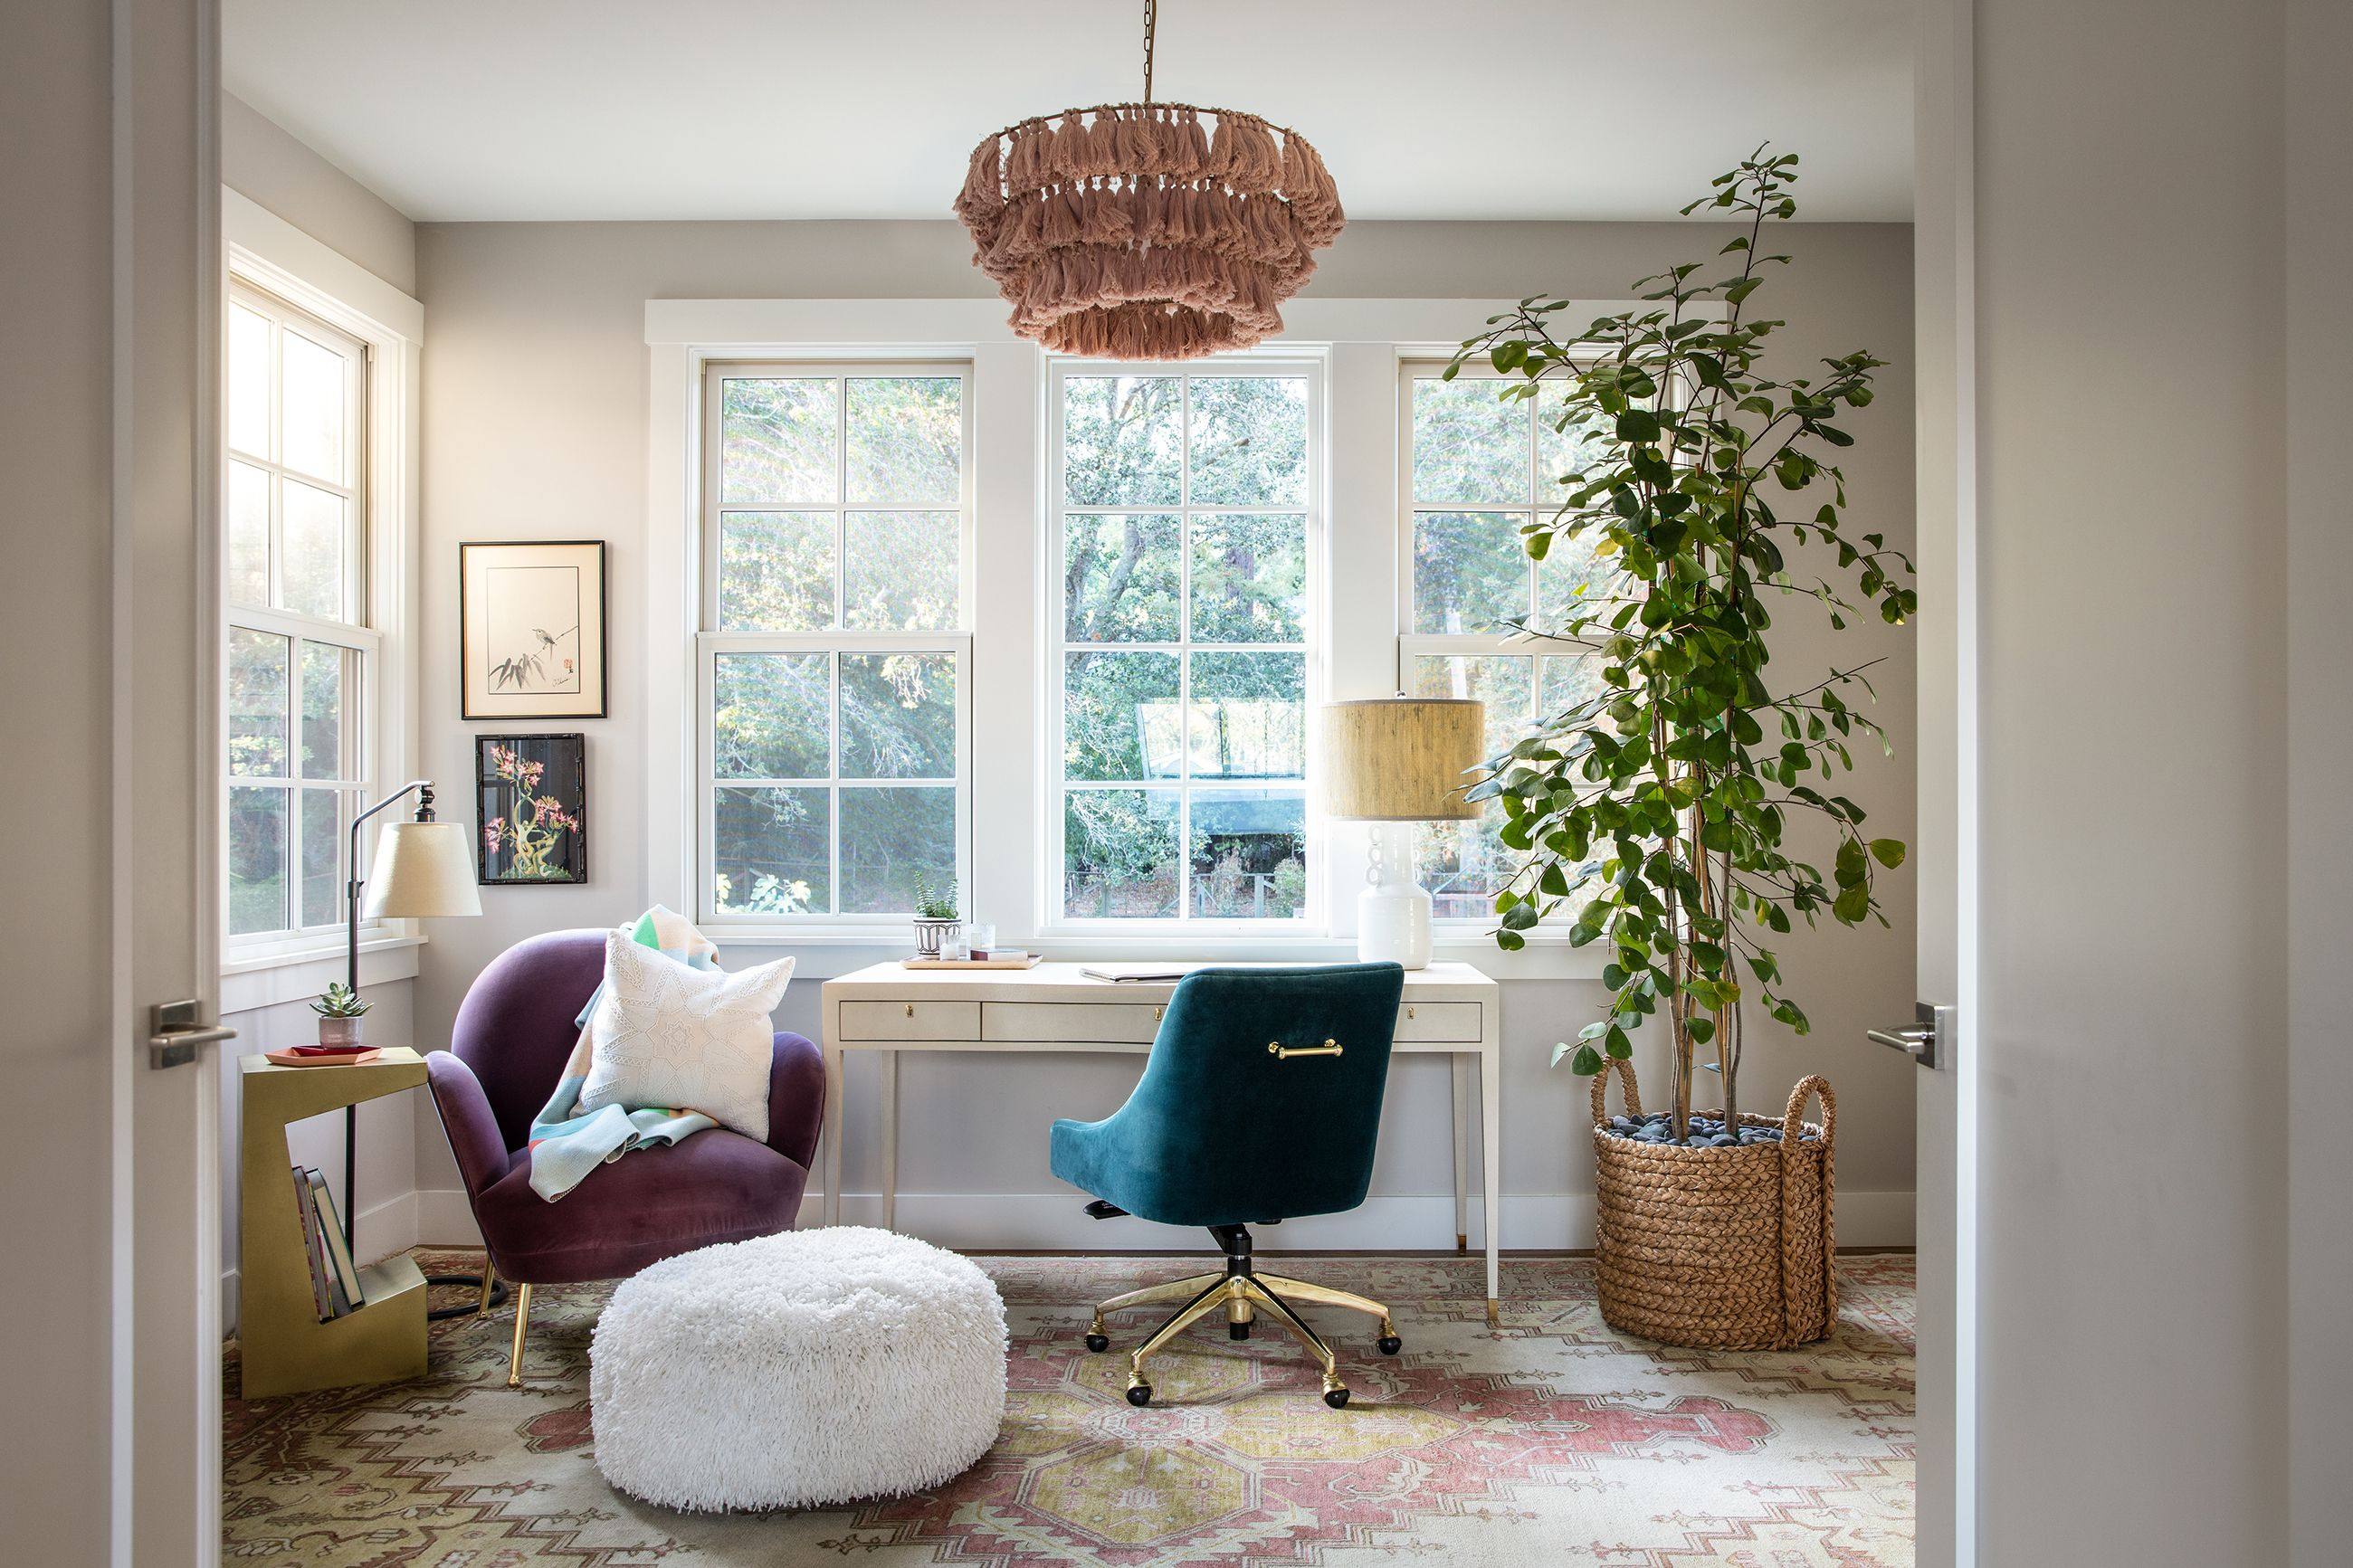 15+ Home Decor Trends for 2021 - What Are the Decorating Trends for 2021?